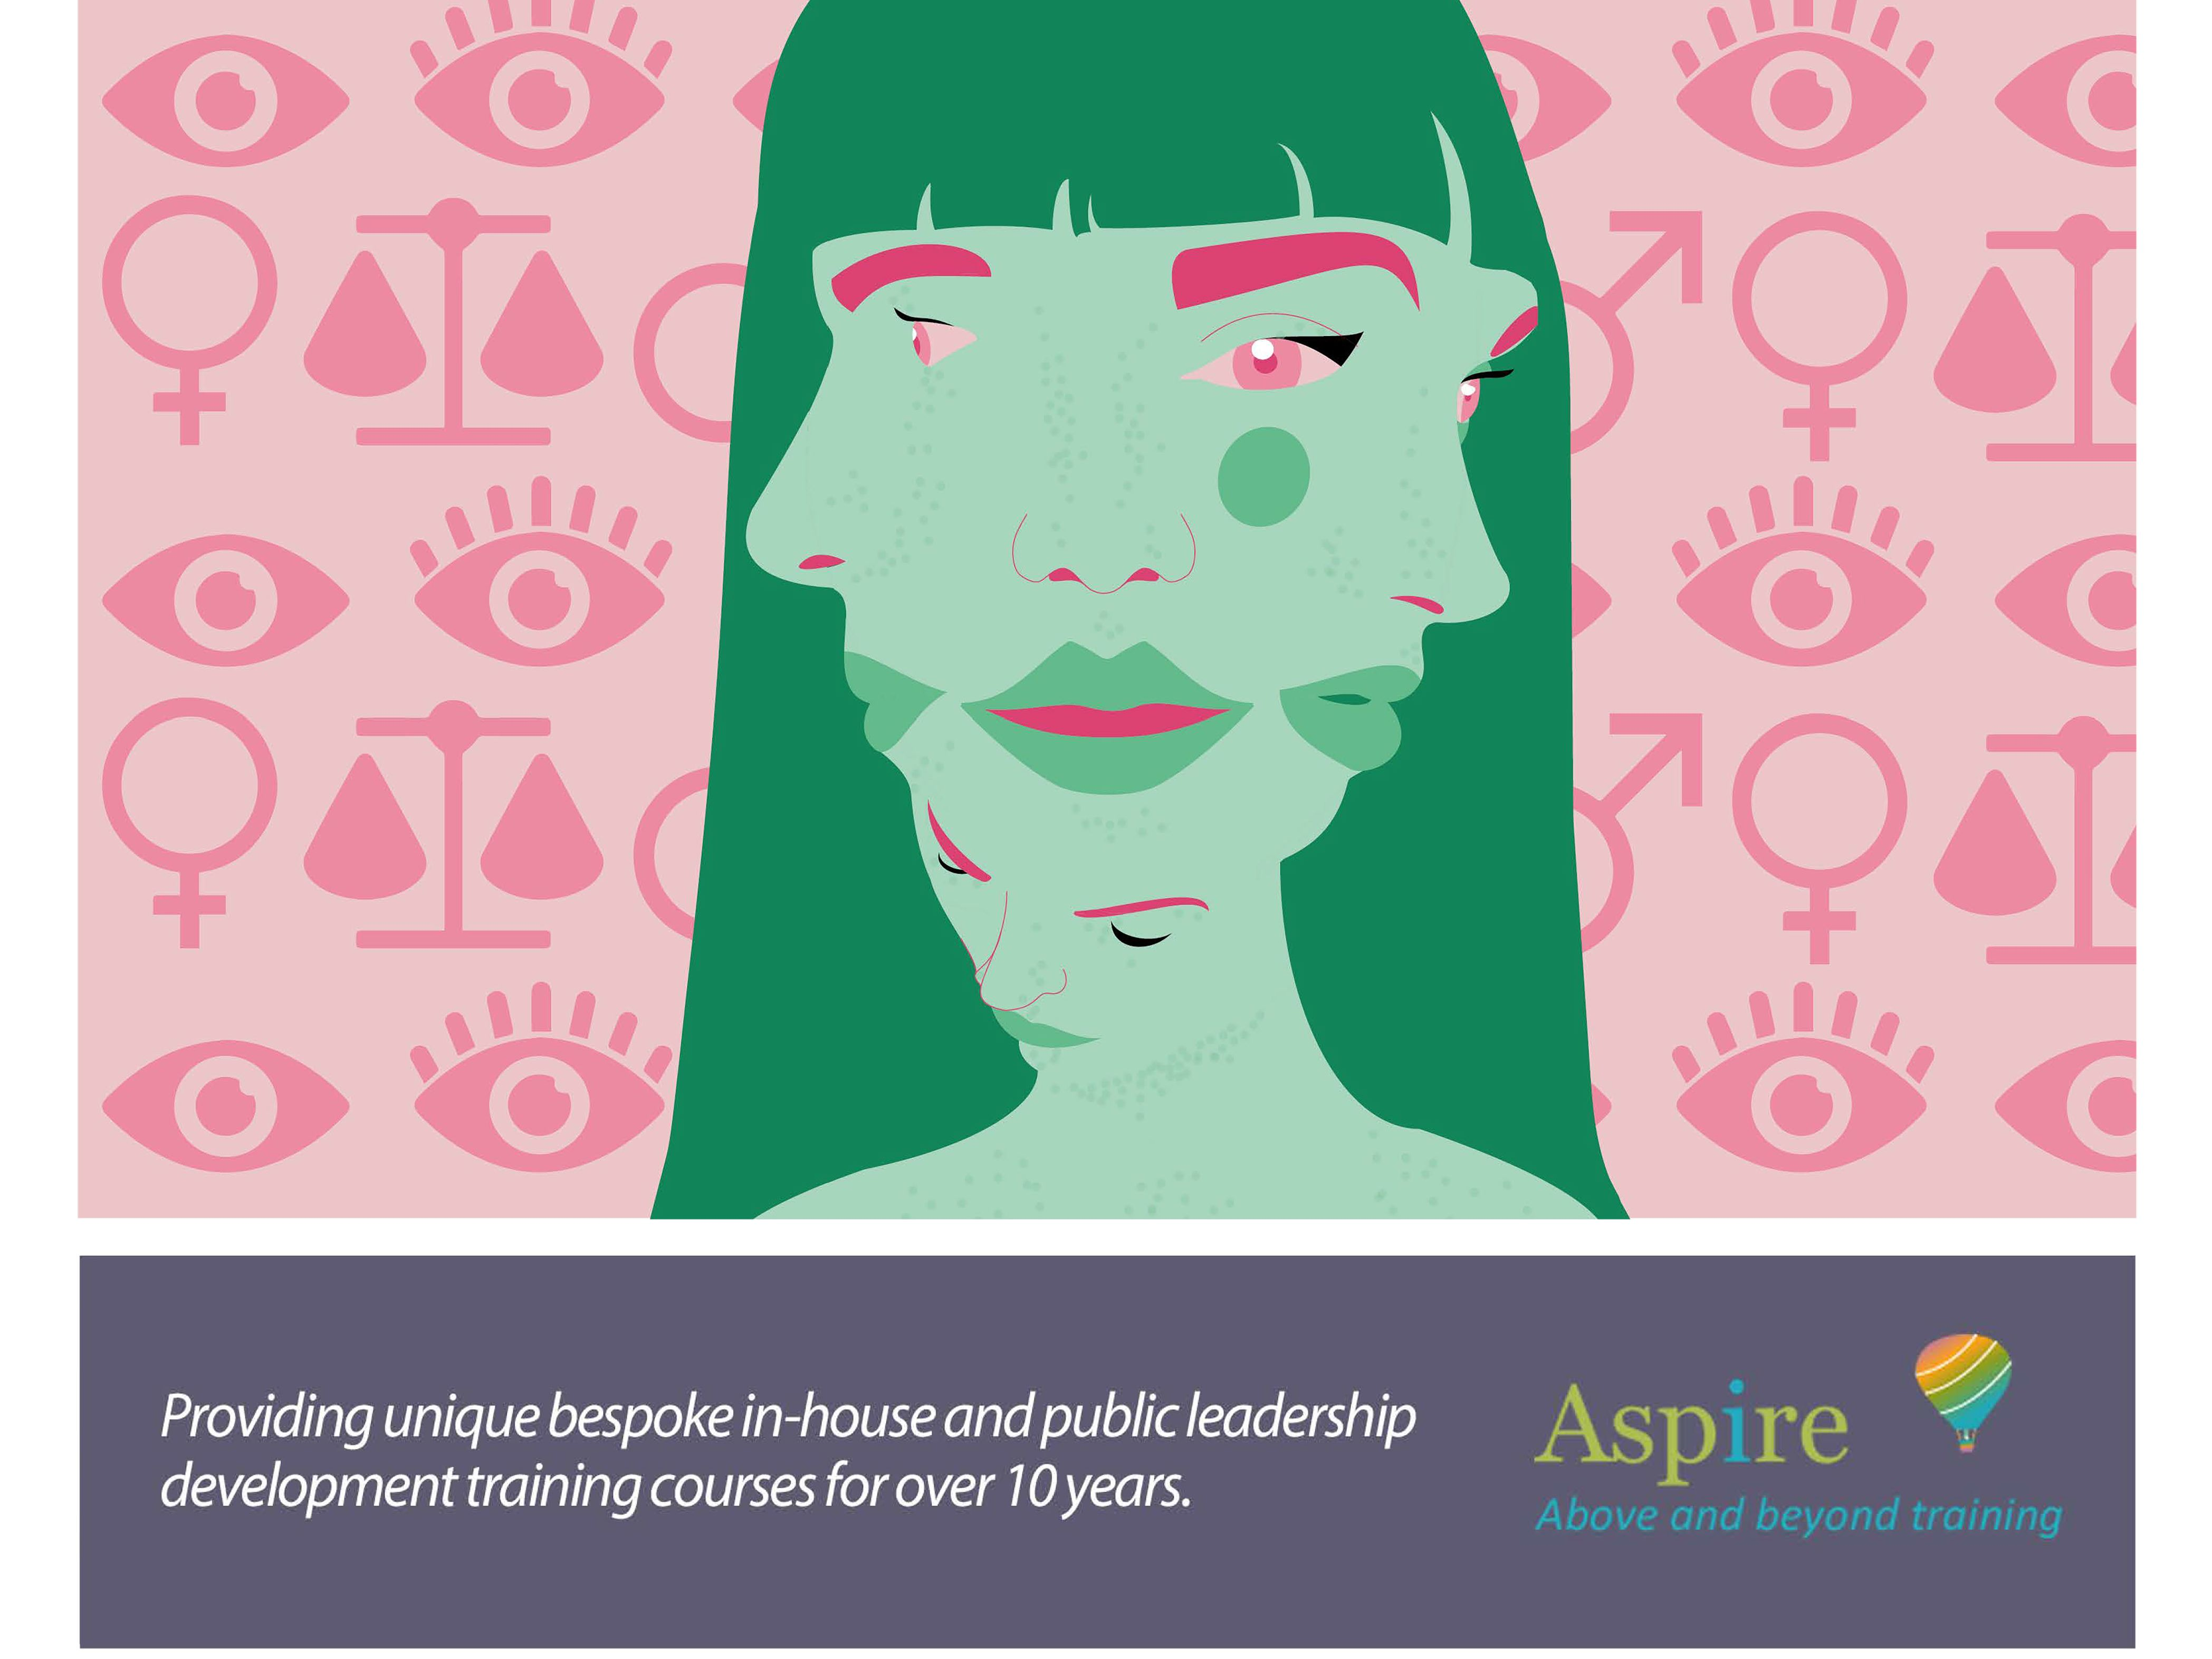 Illustration of a green face on a pink background